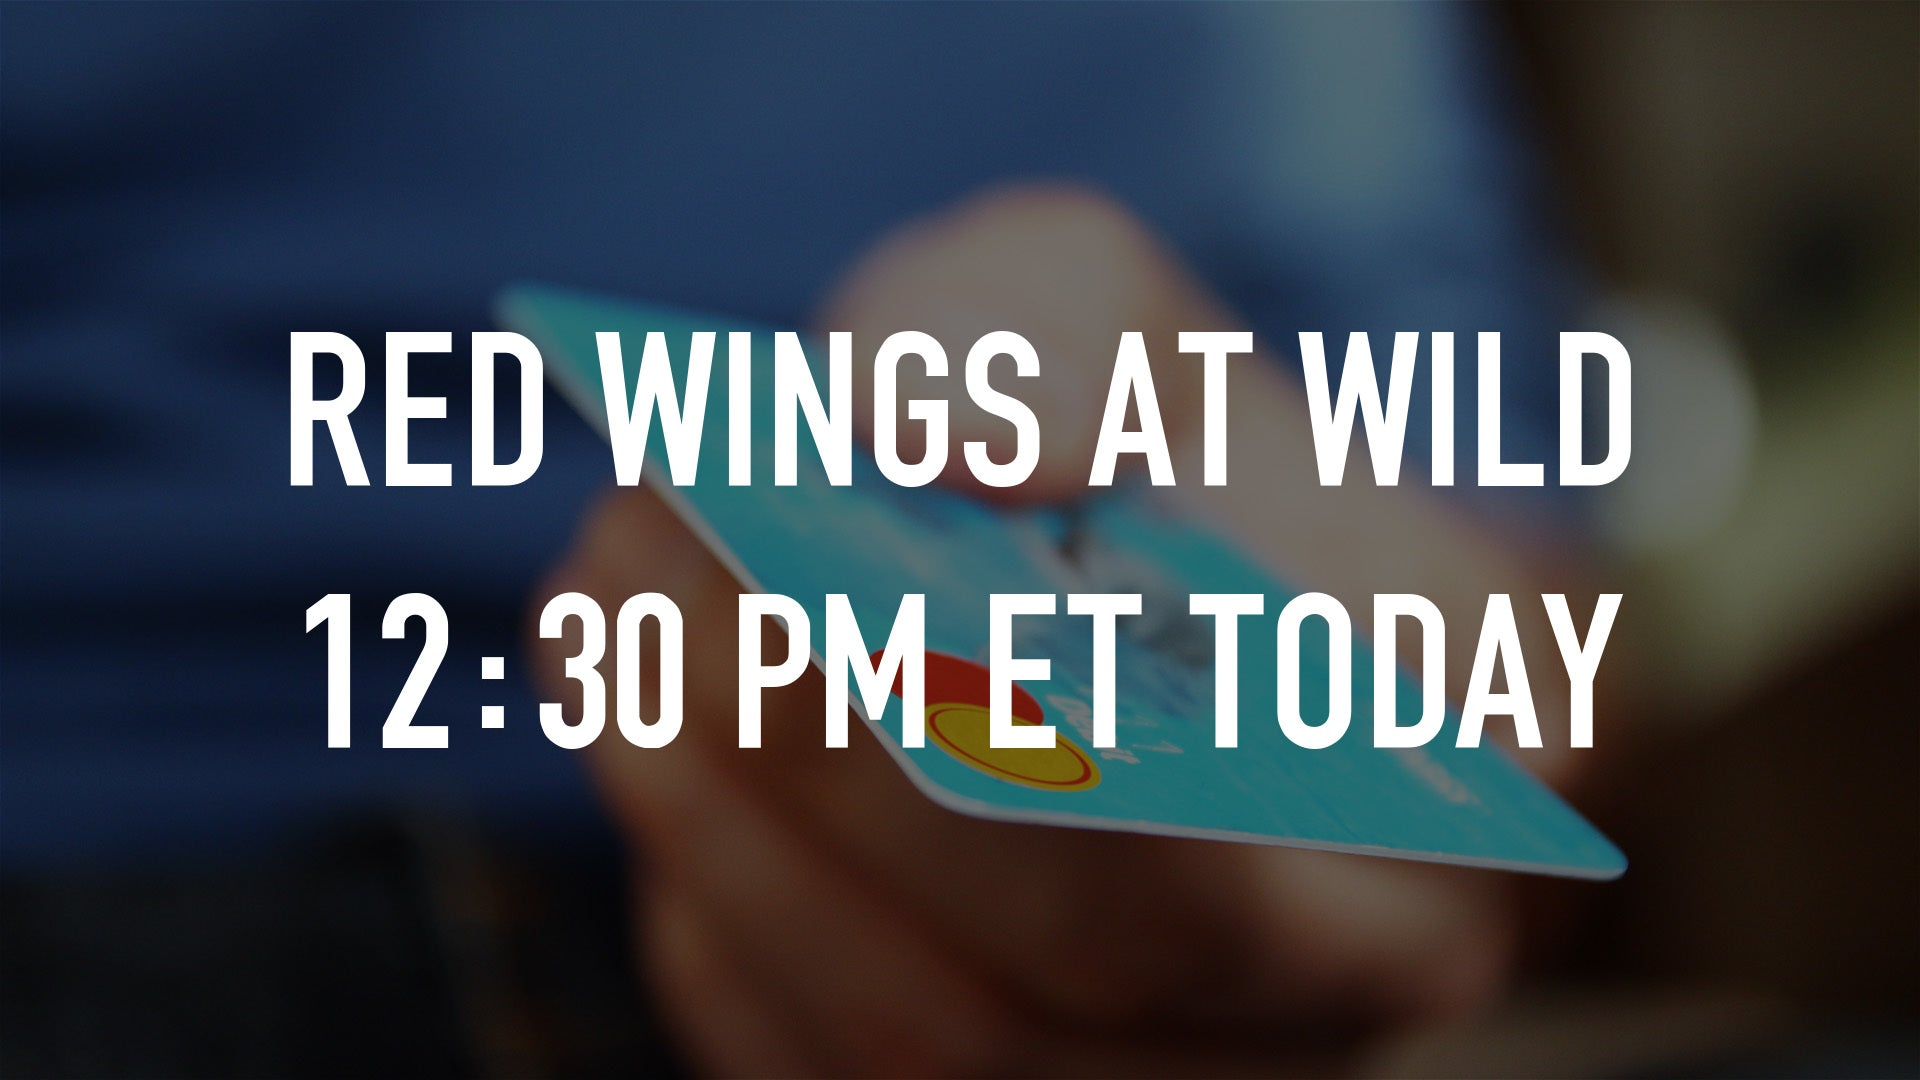 Red Wings at Wild 12:30 pm ET Today